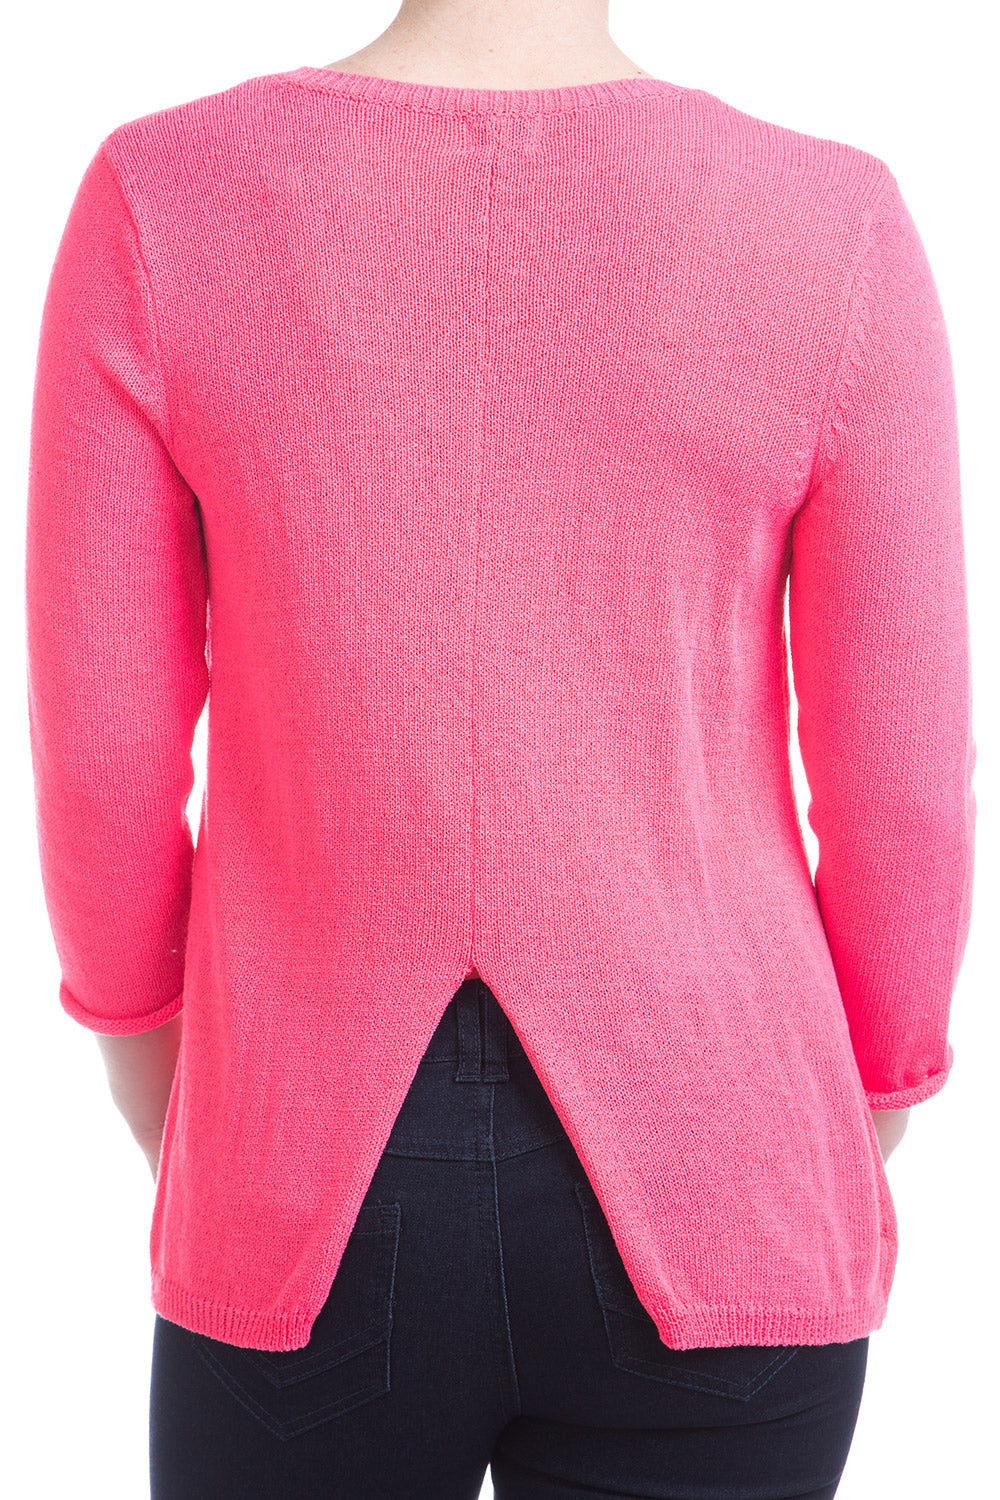 Type 4 Neon Lights Sweater In Pink